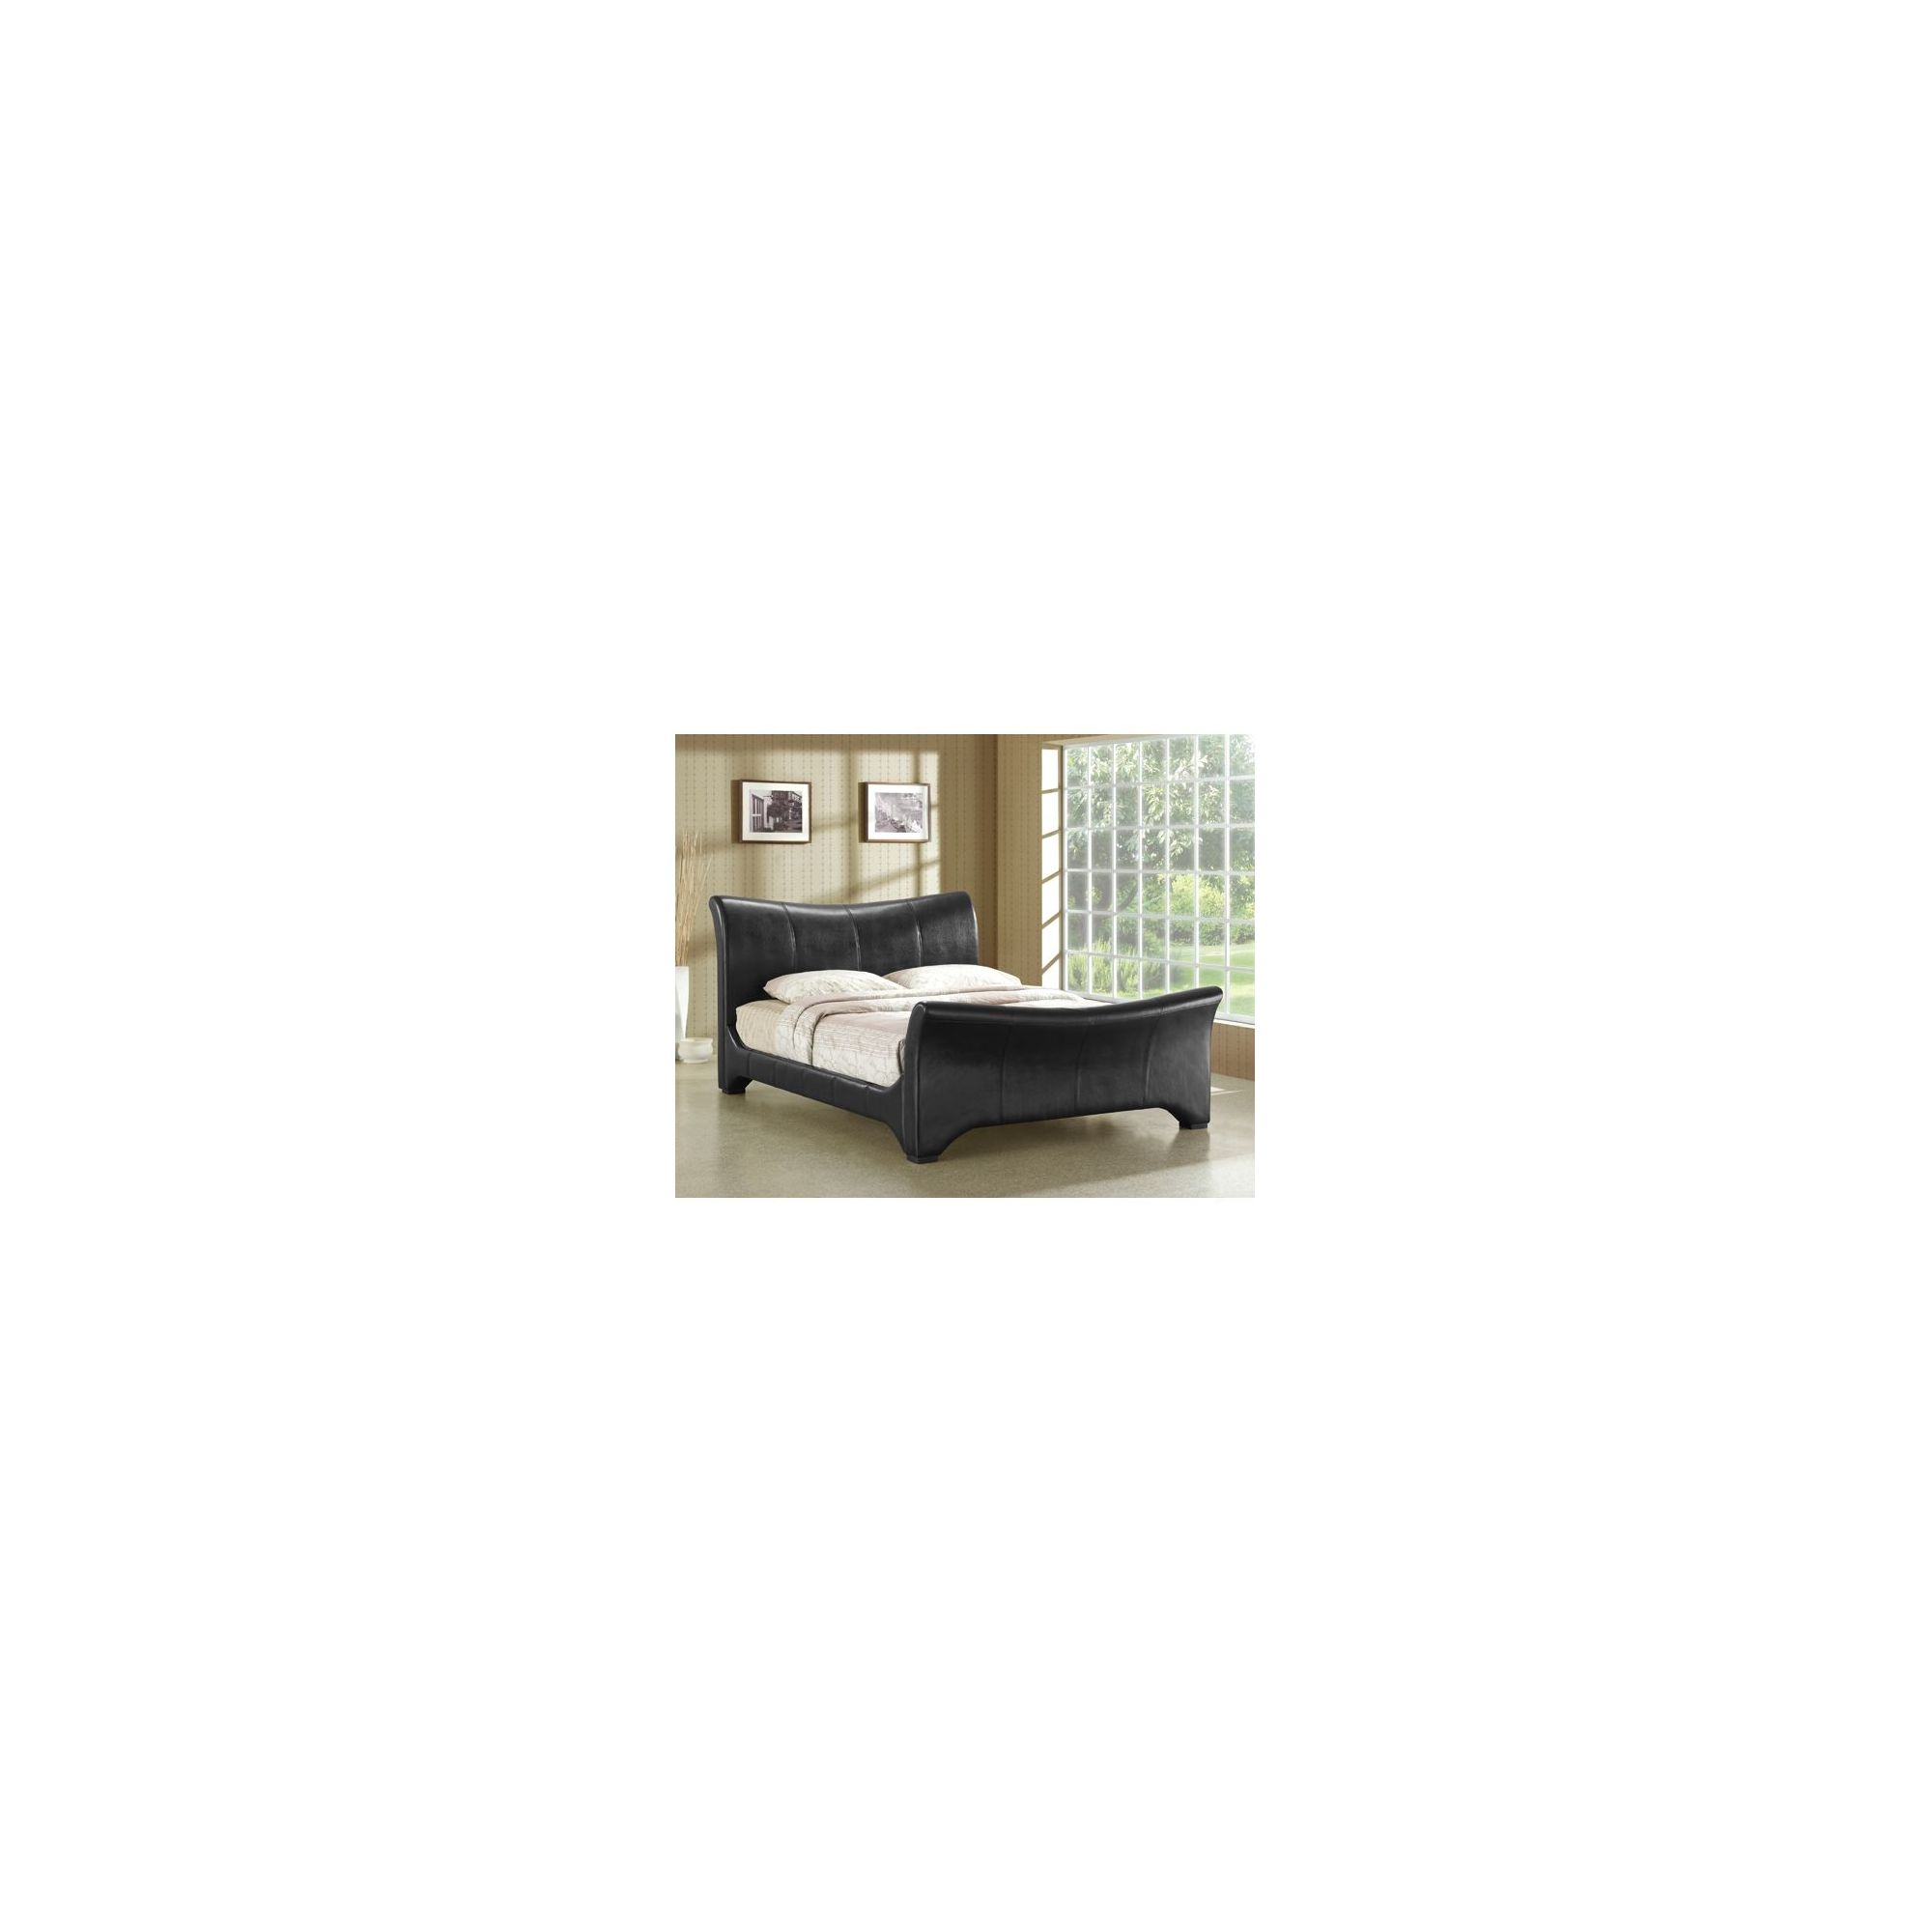 Altruna Wave Faux Leather Bed Frame - Double - Black at Tesco Direct